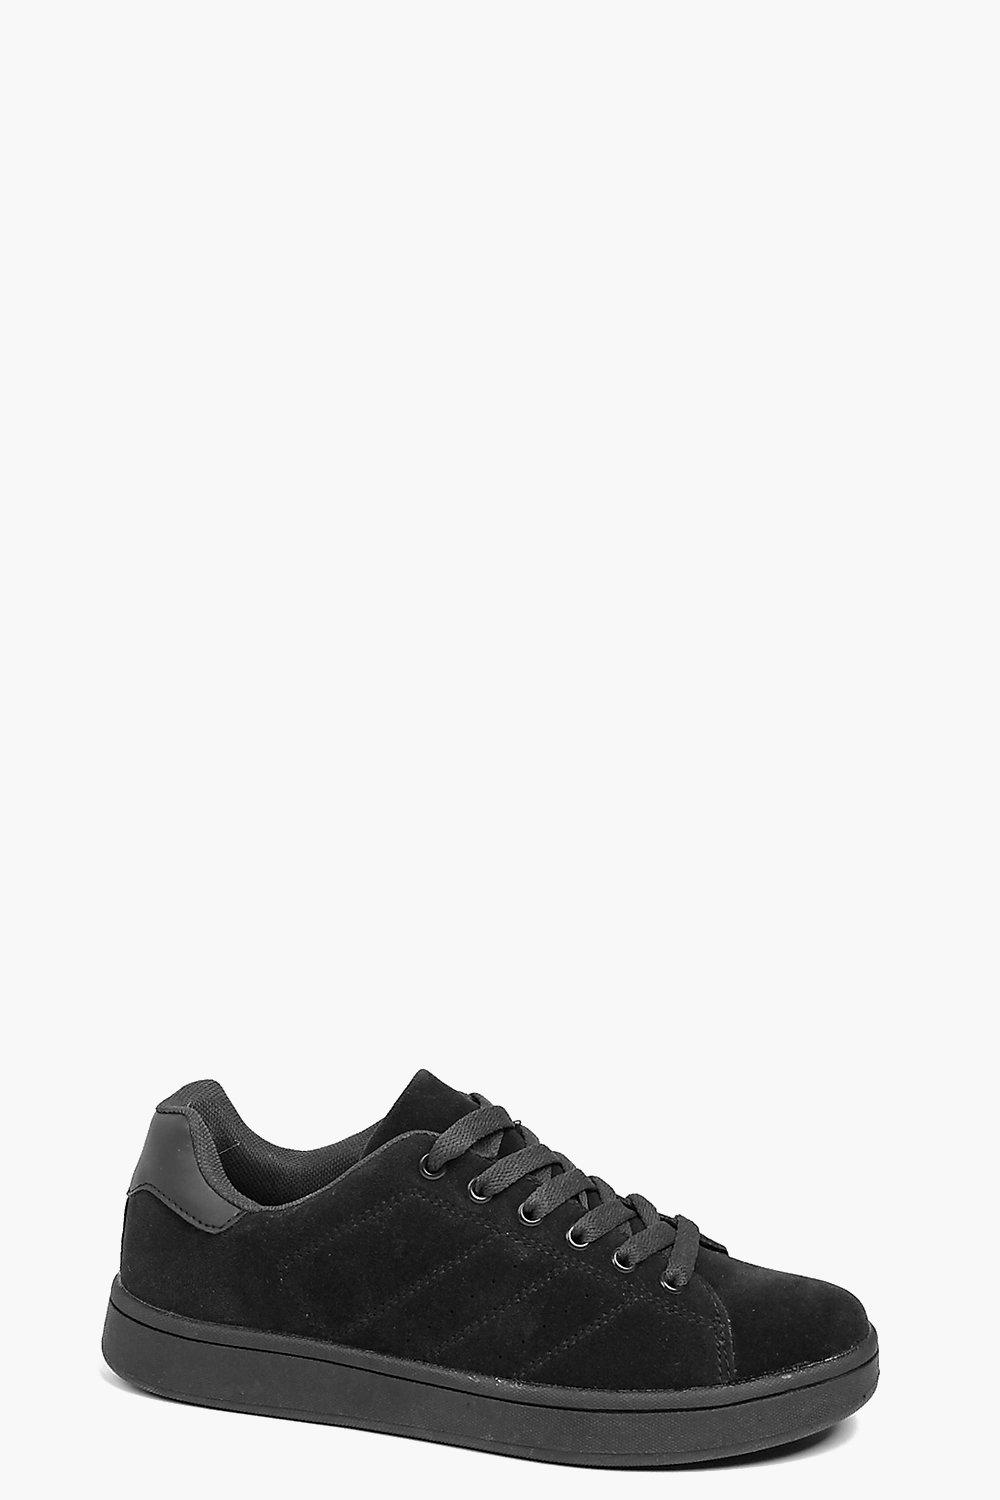 Abigail Lace Up Trainer